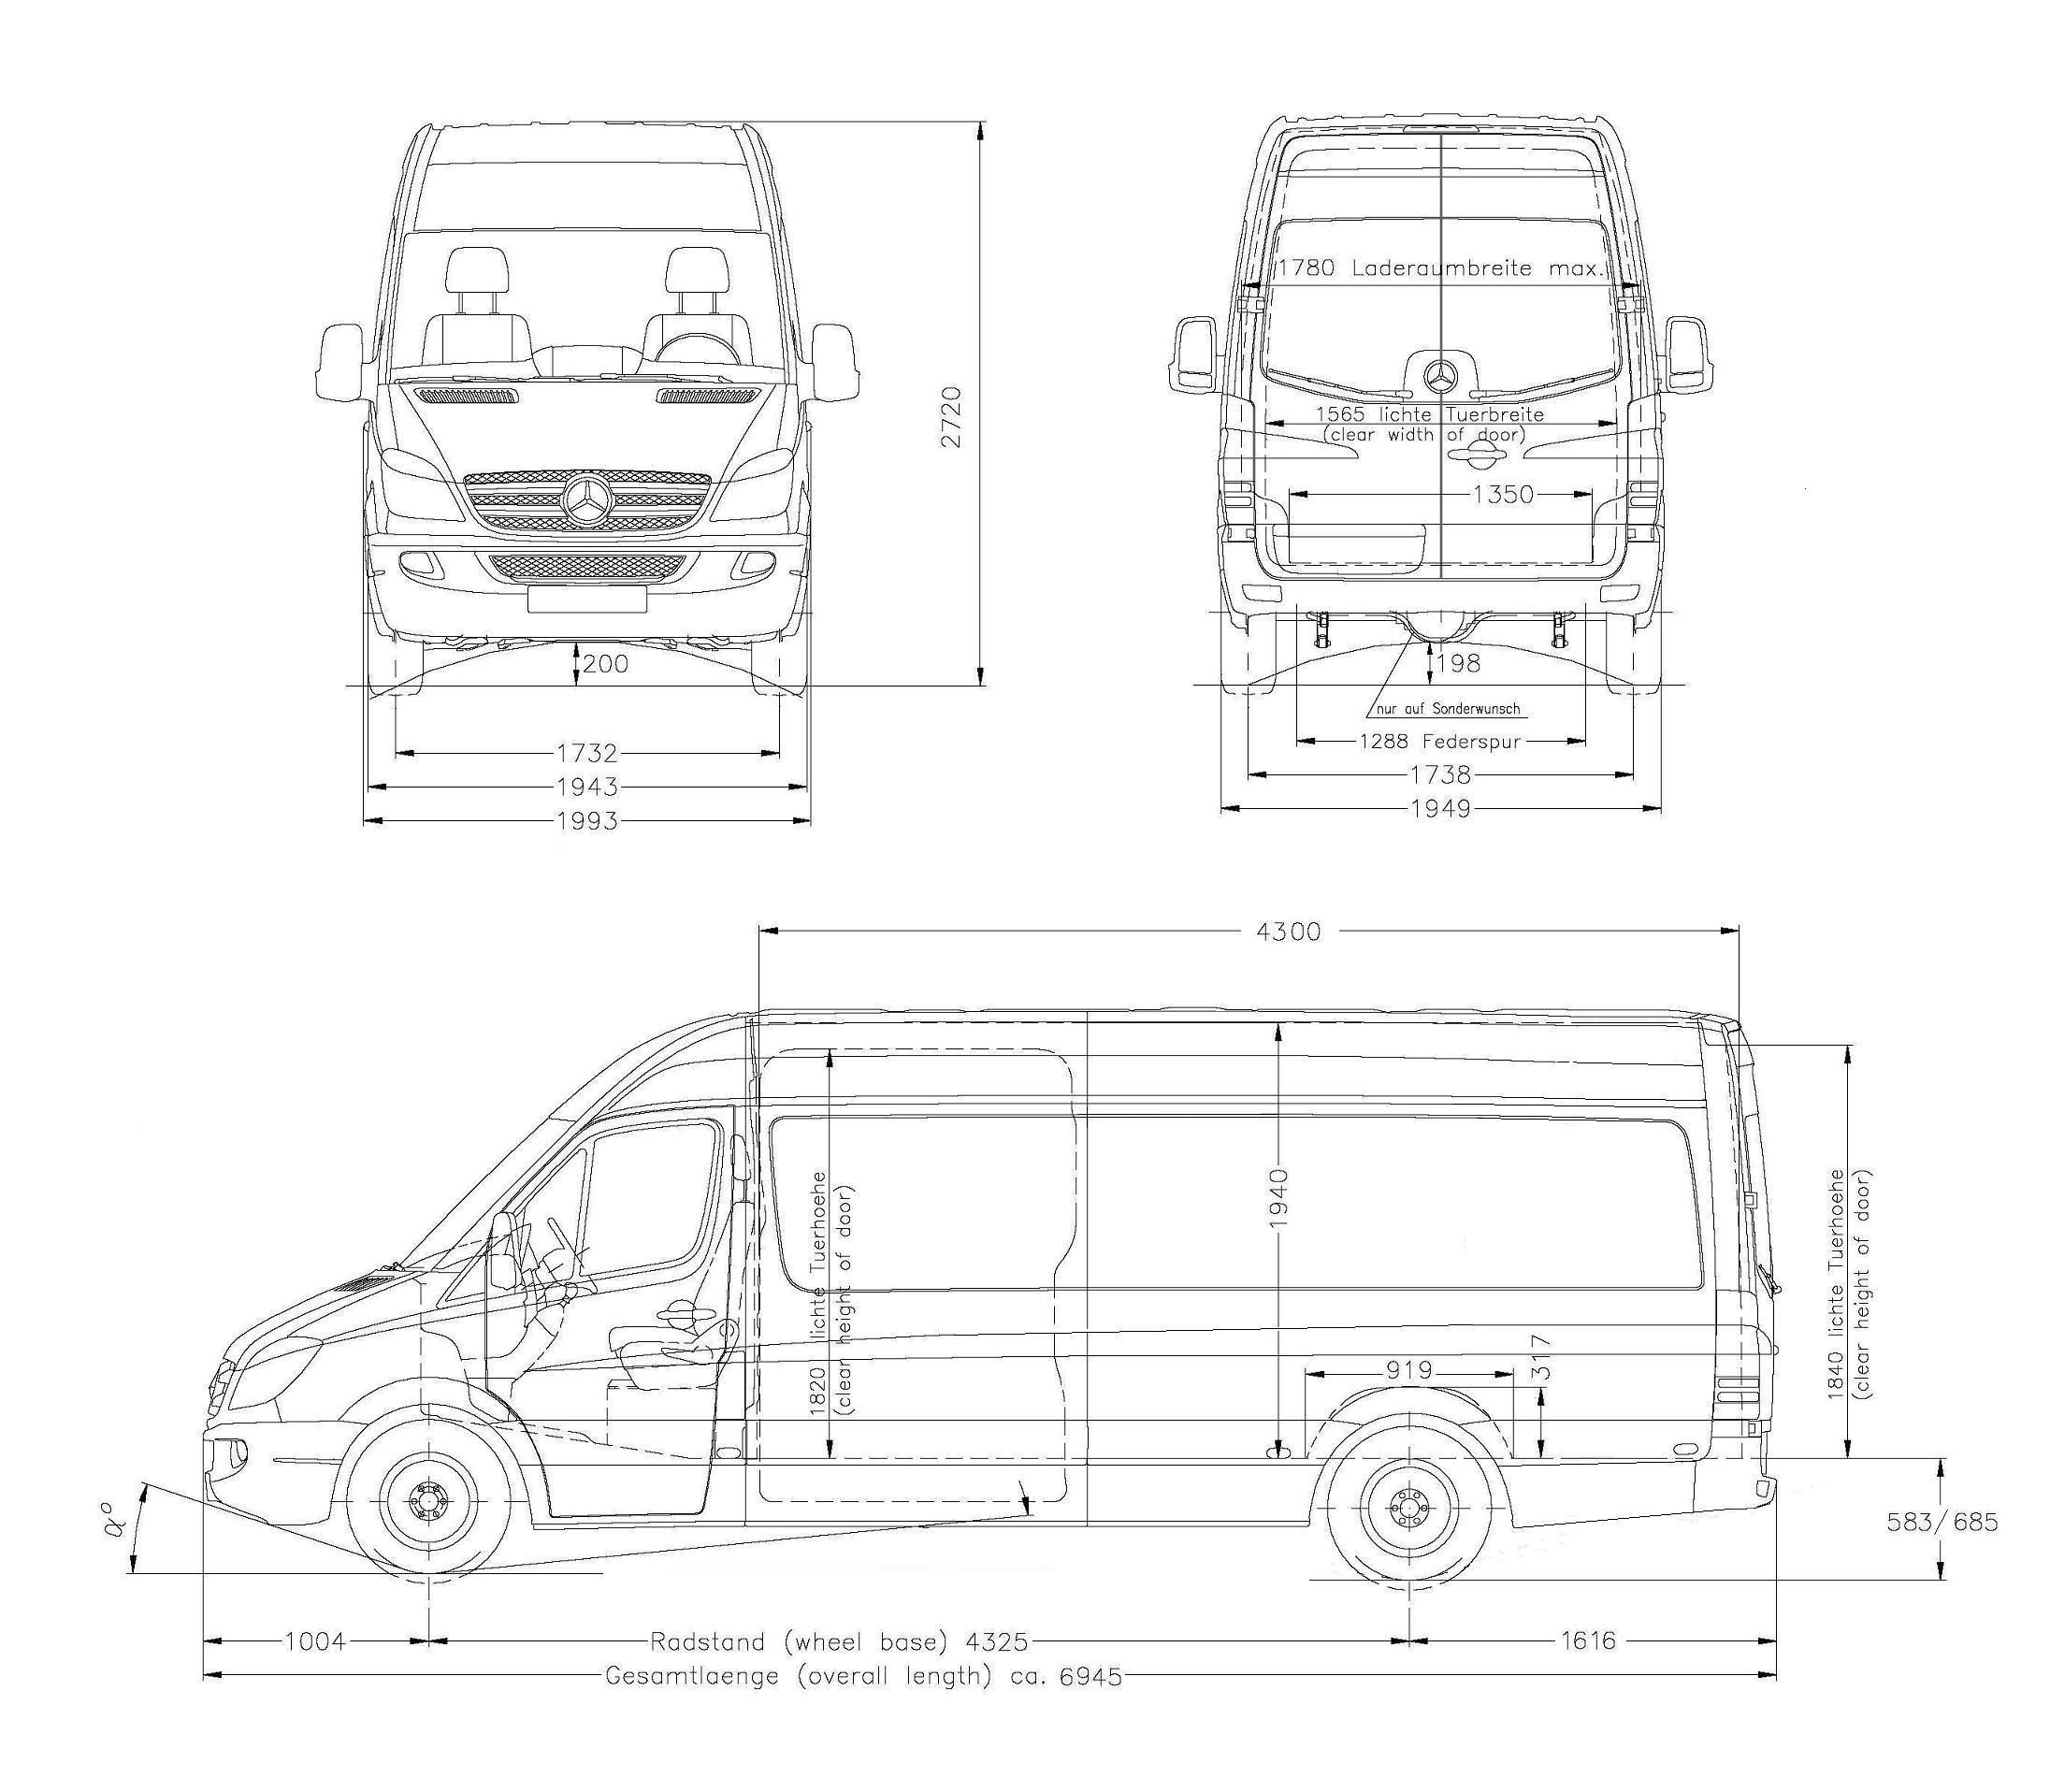 Pin By Zhi Min Lau On Camper Van